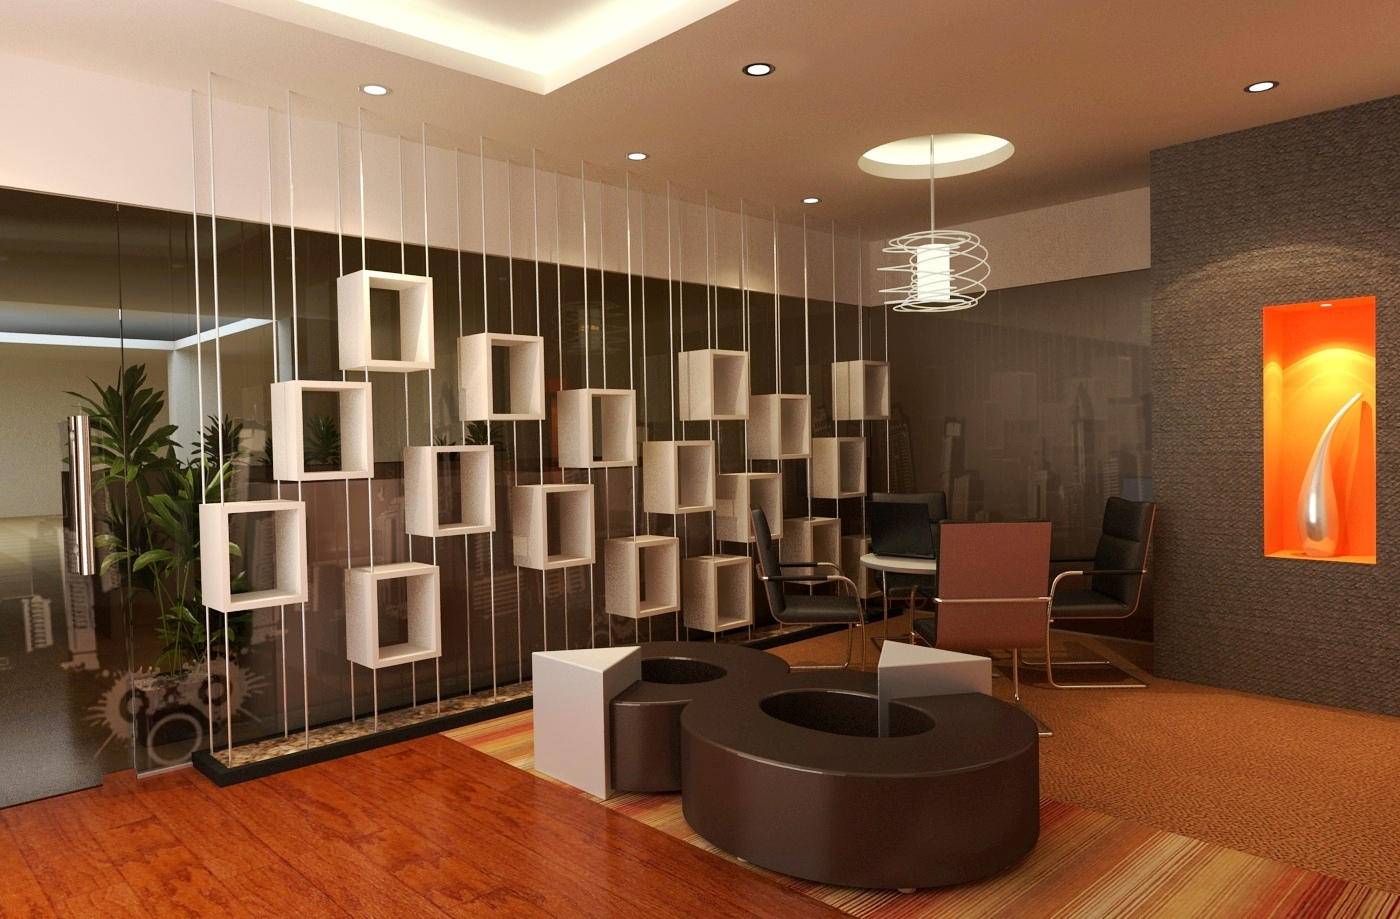 Portfolio interior design company in bangladesh - Business name for interior design company ...